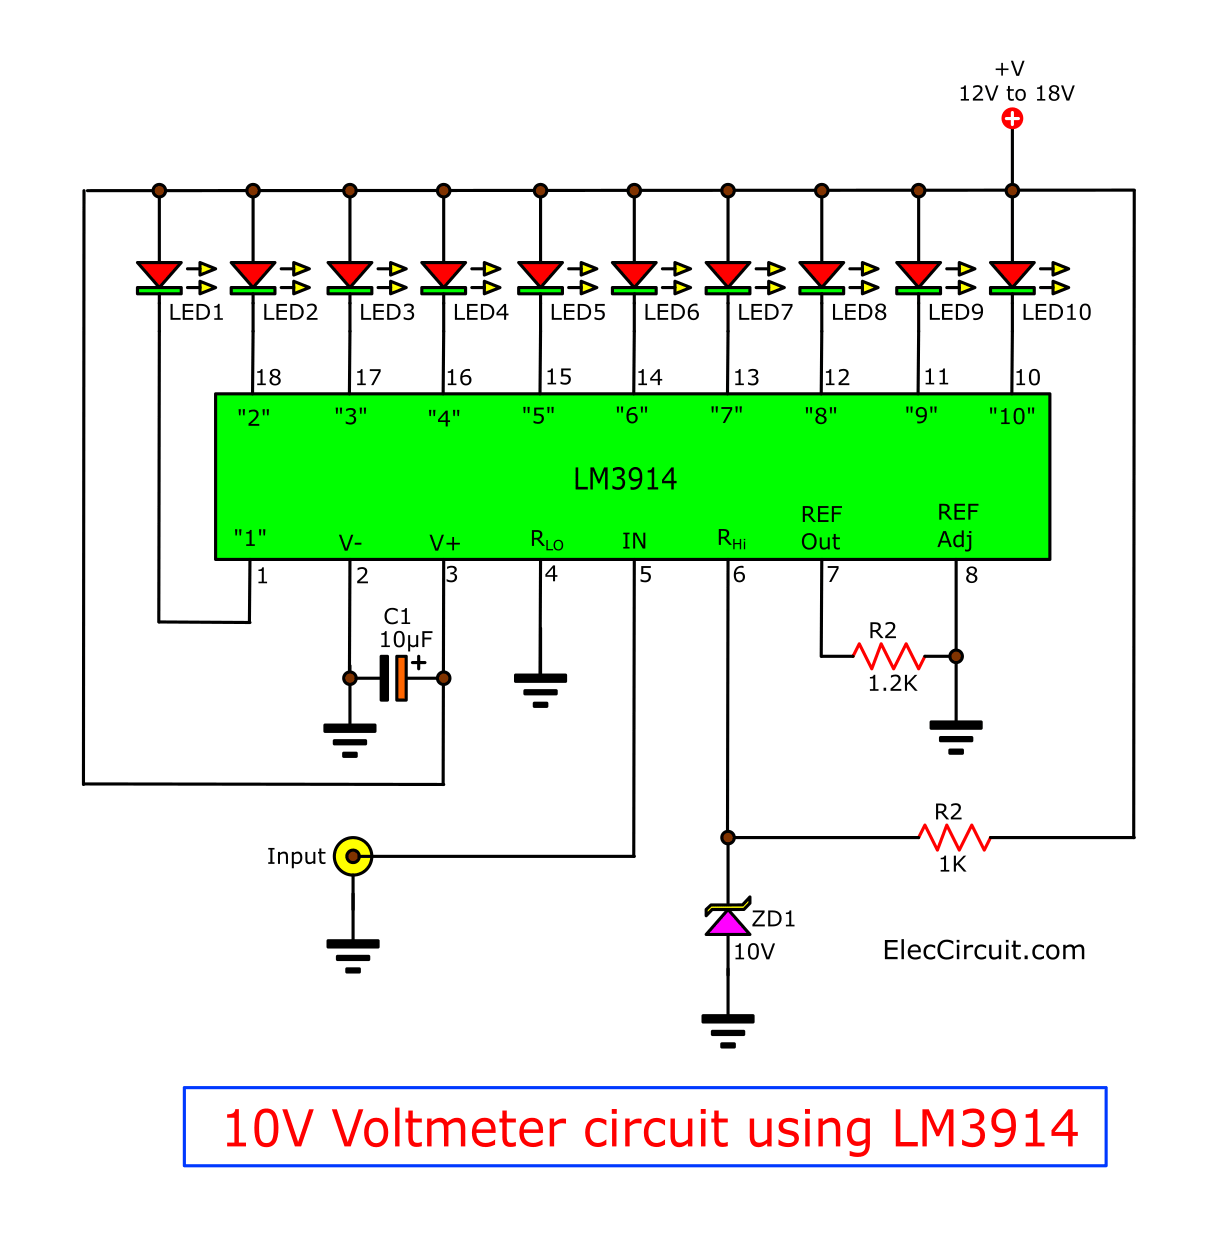 10V voltmeter circuit using LM3914 and Zener Diode